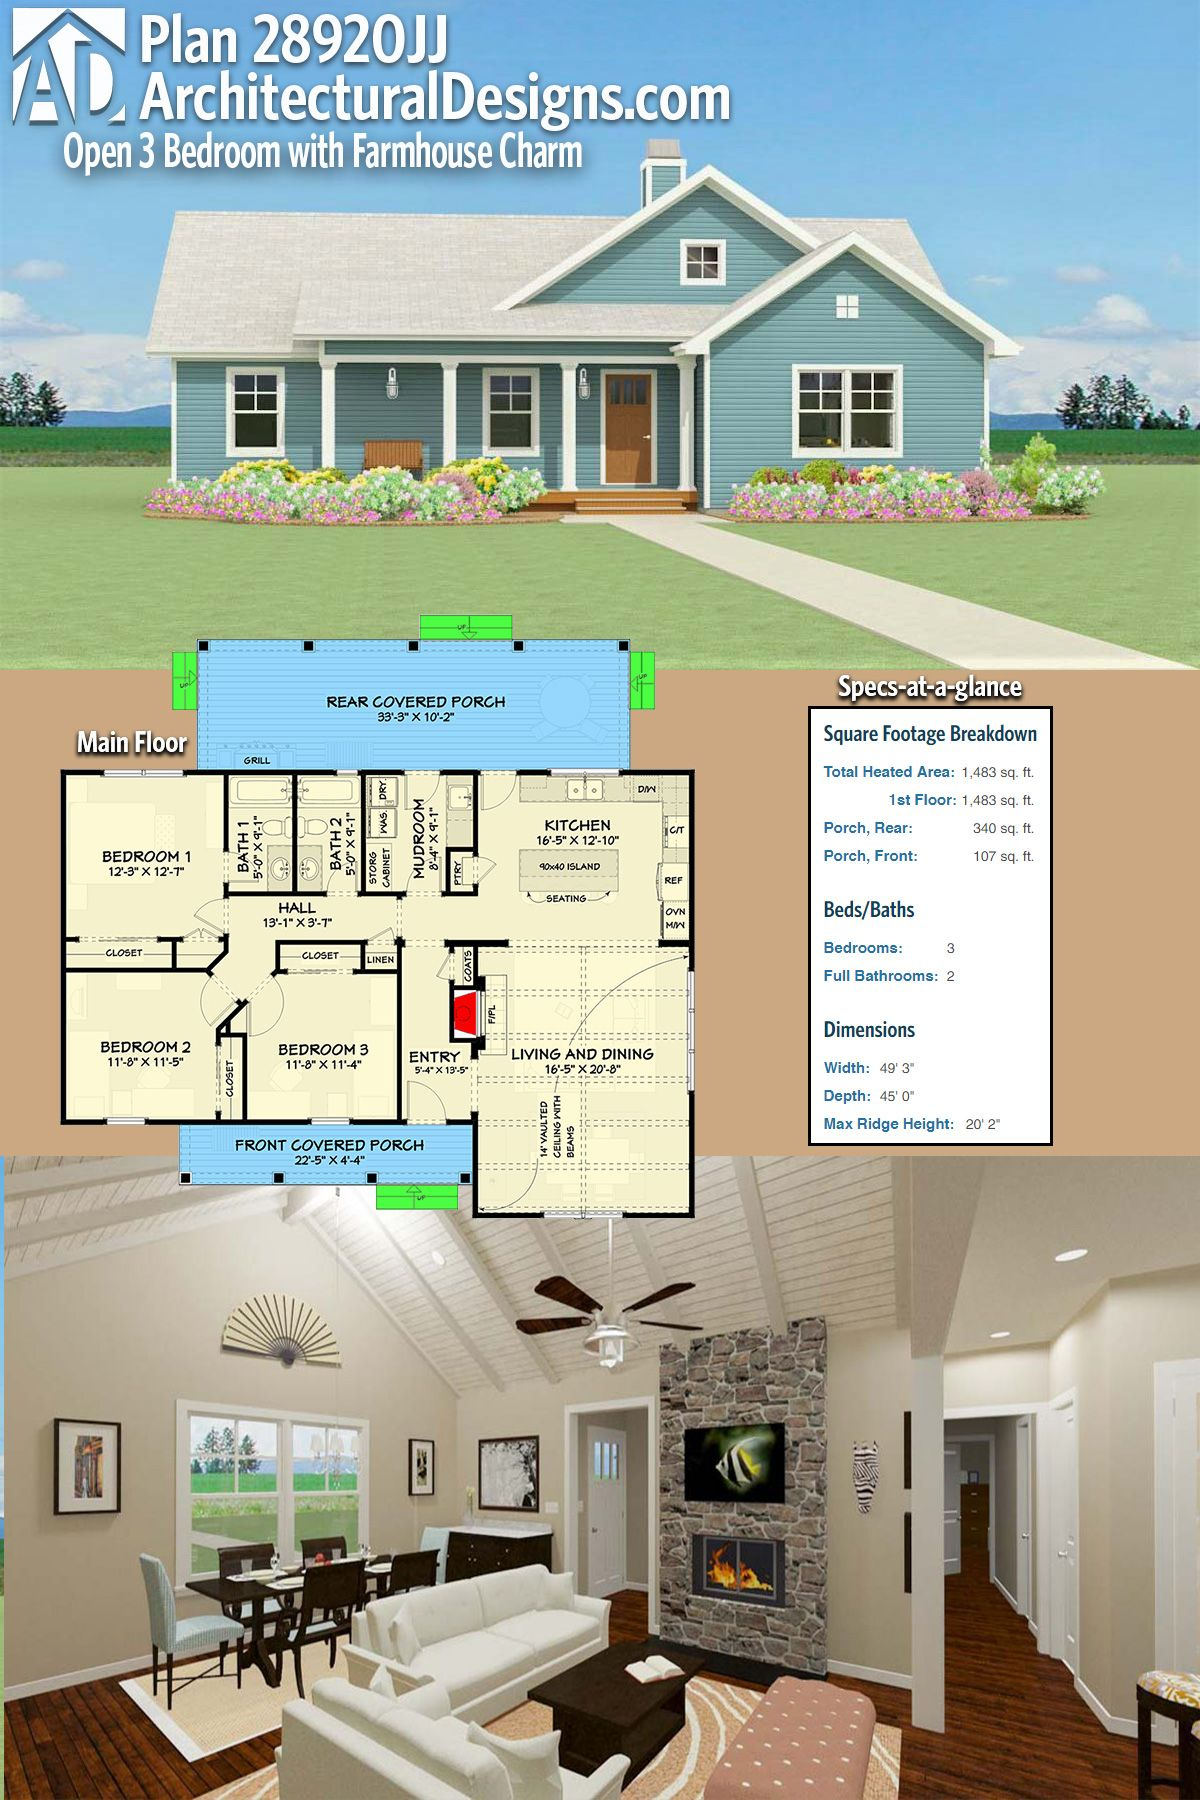 master bedroom additions over garage%0A Plan      JJ  Open   Bedroom with Farmhouse Charm